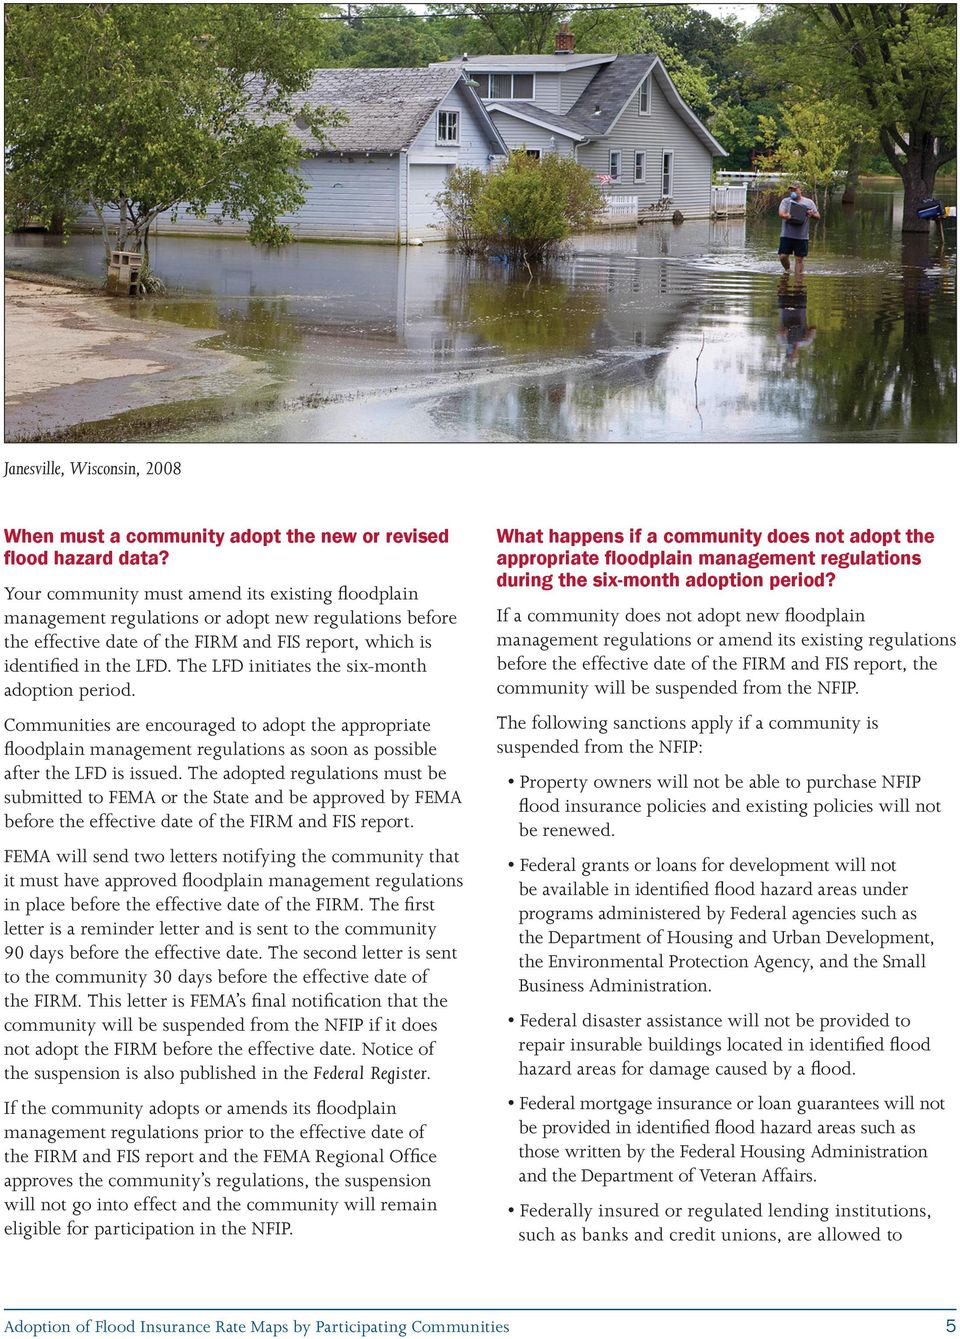 The LFD initiates the six-month adoption period. Communities are encouraged to adopt the appropriate floodplain management regulations as soon as possible after the LFD is issued.